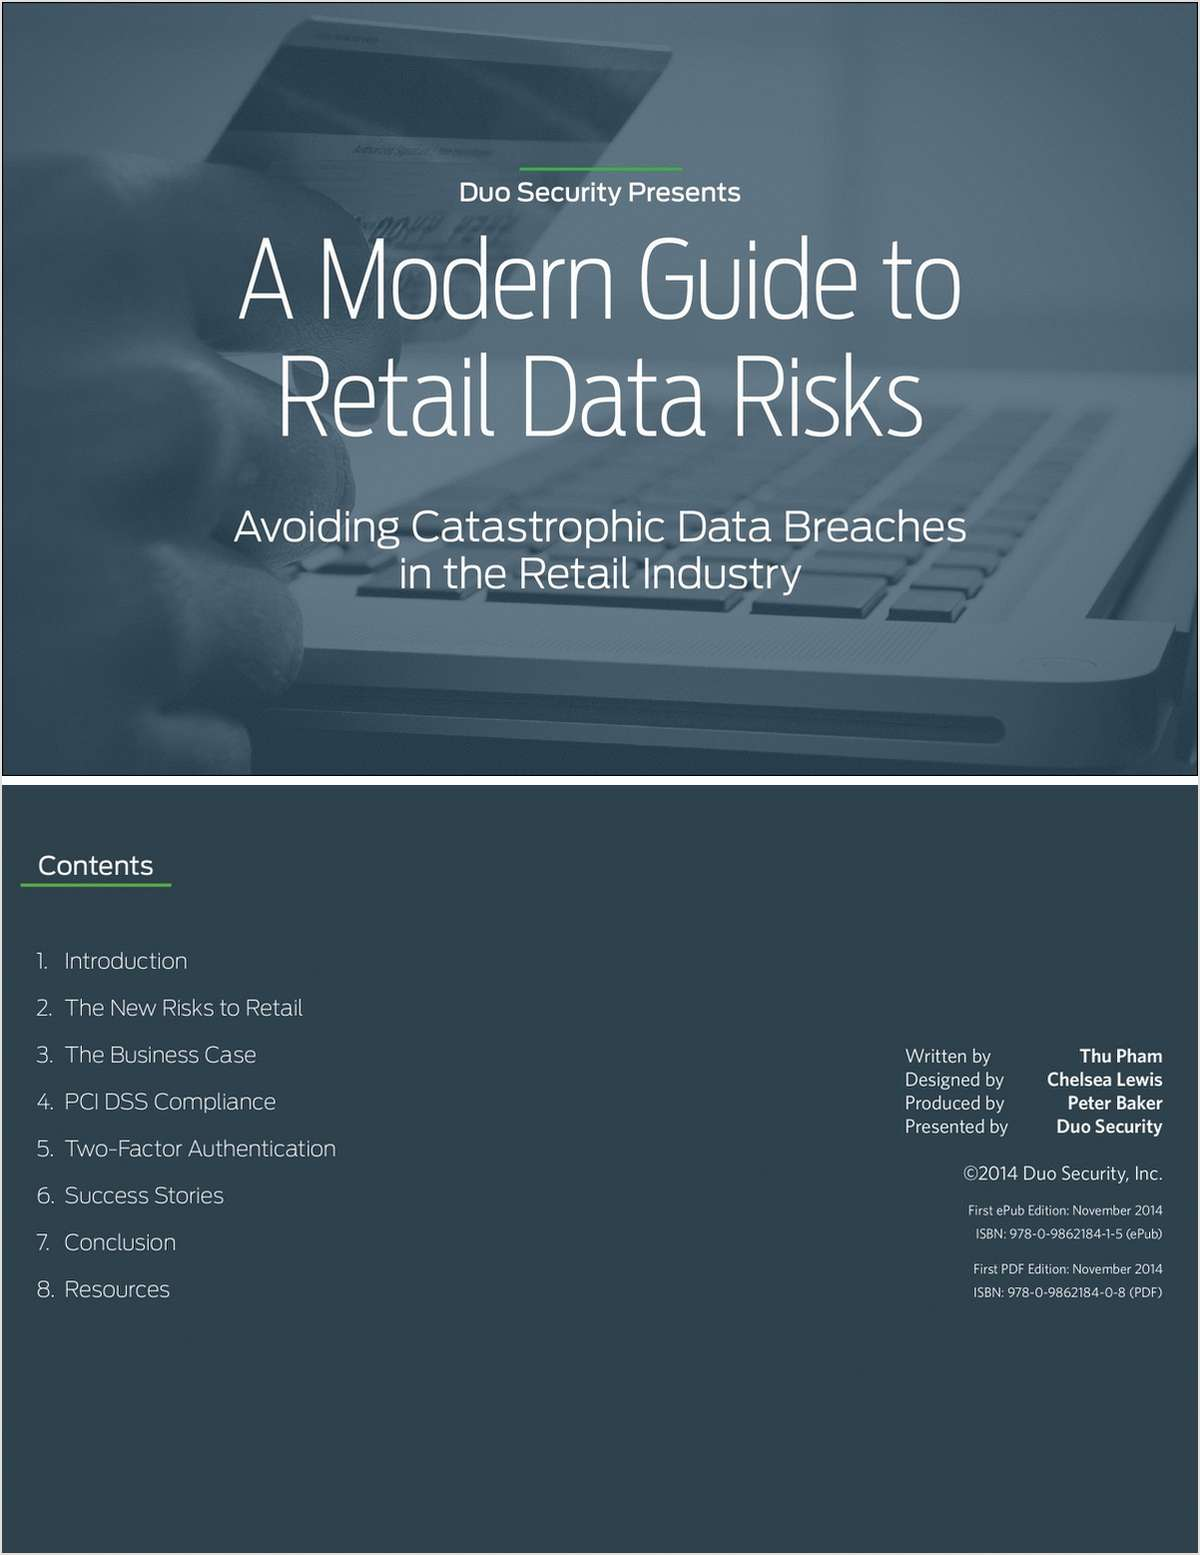 Modern Retail Security Risks: Avoiding Catastrophic Data Breaches in the Retail Industry